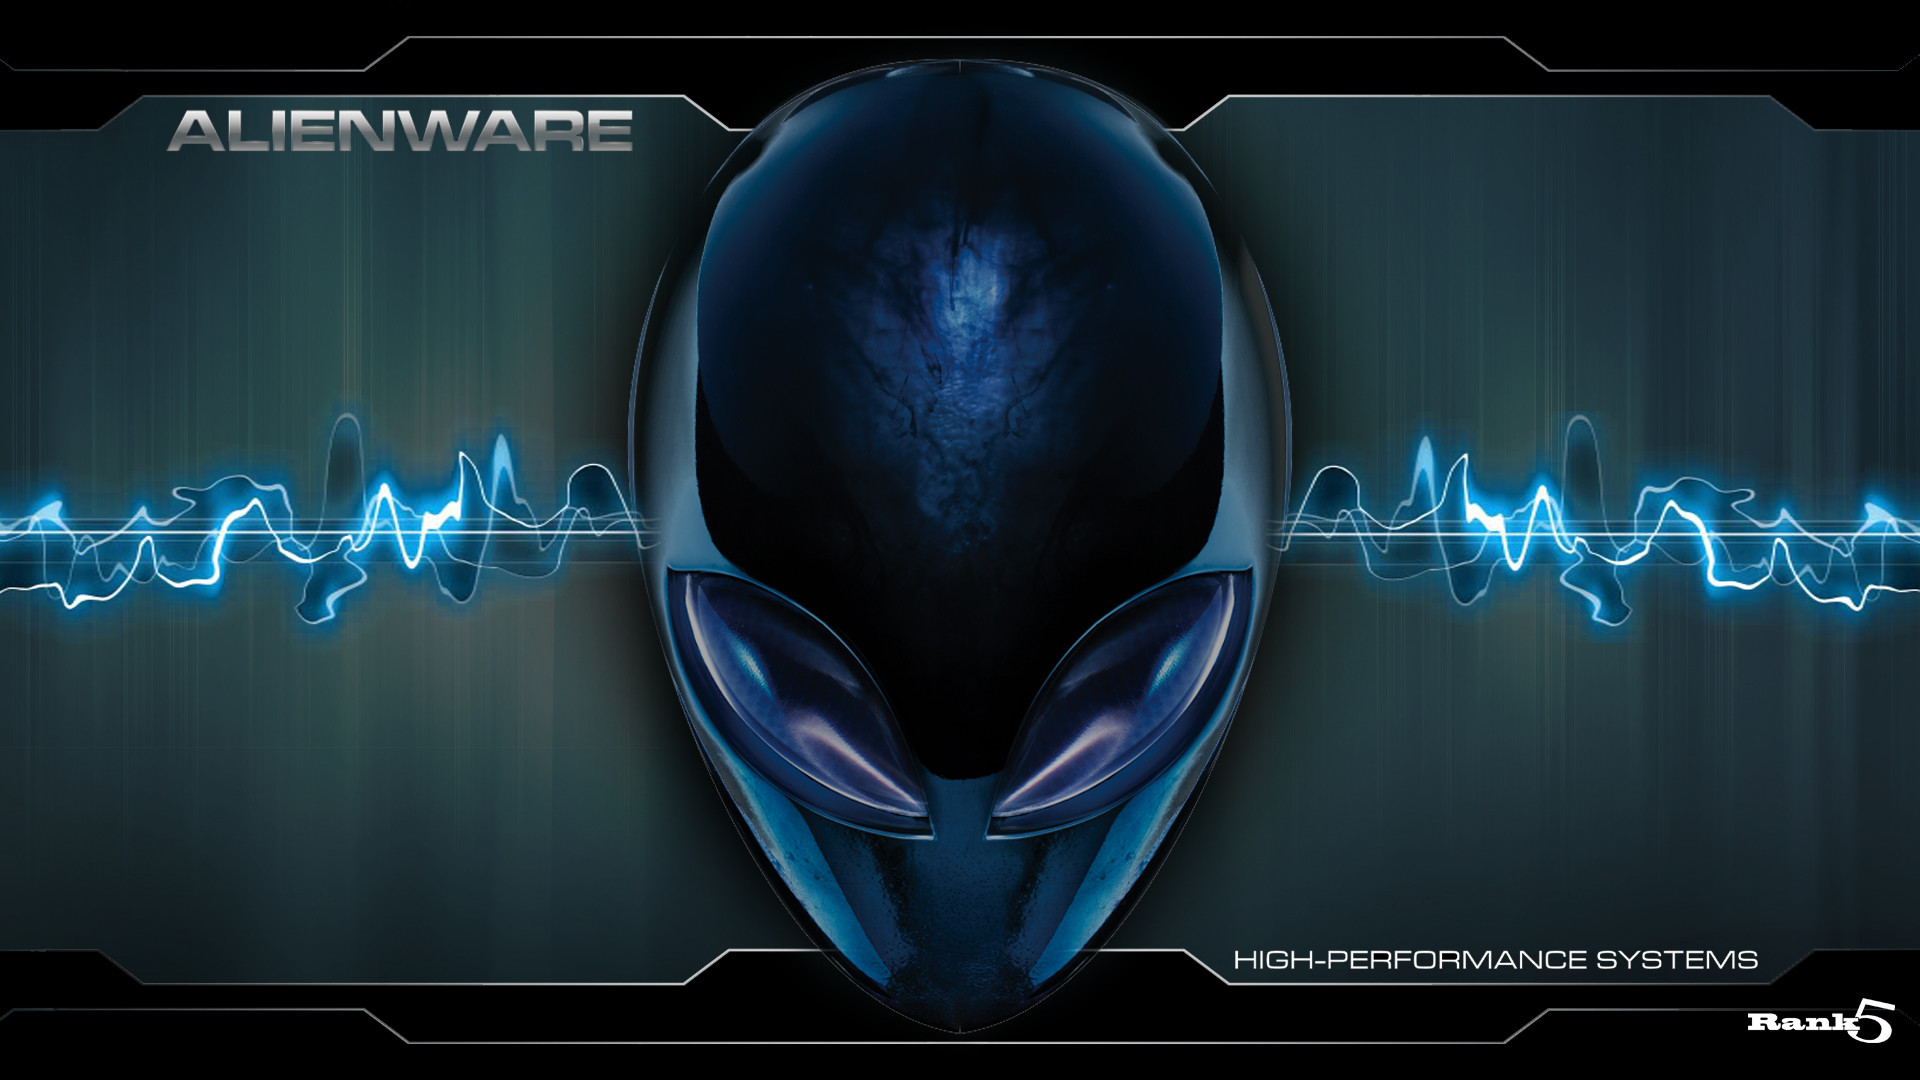 Alienware wallpapers for windows 7 wallpapersafari - 1920x1080